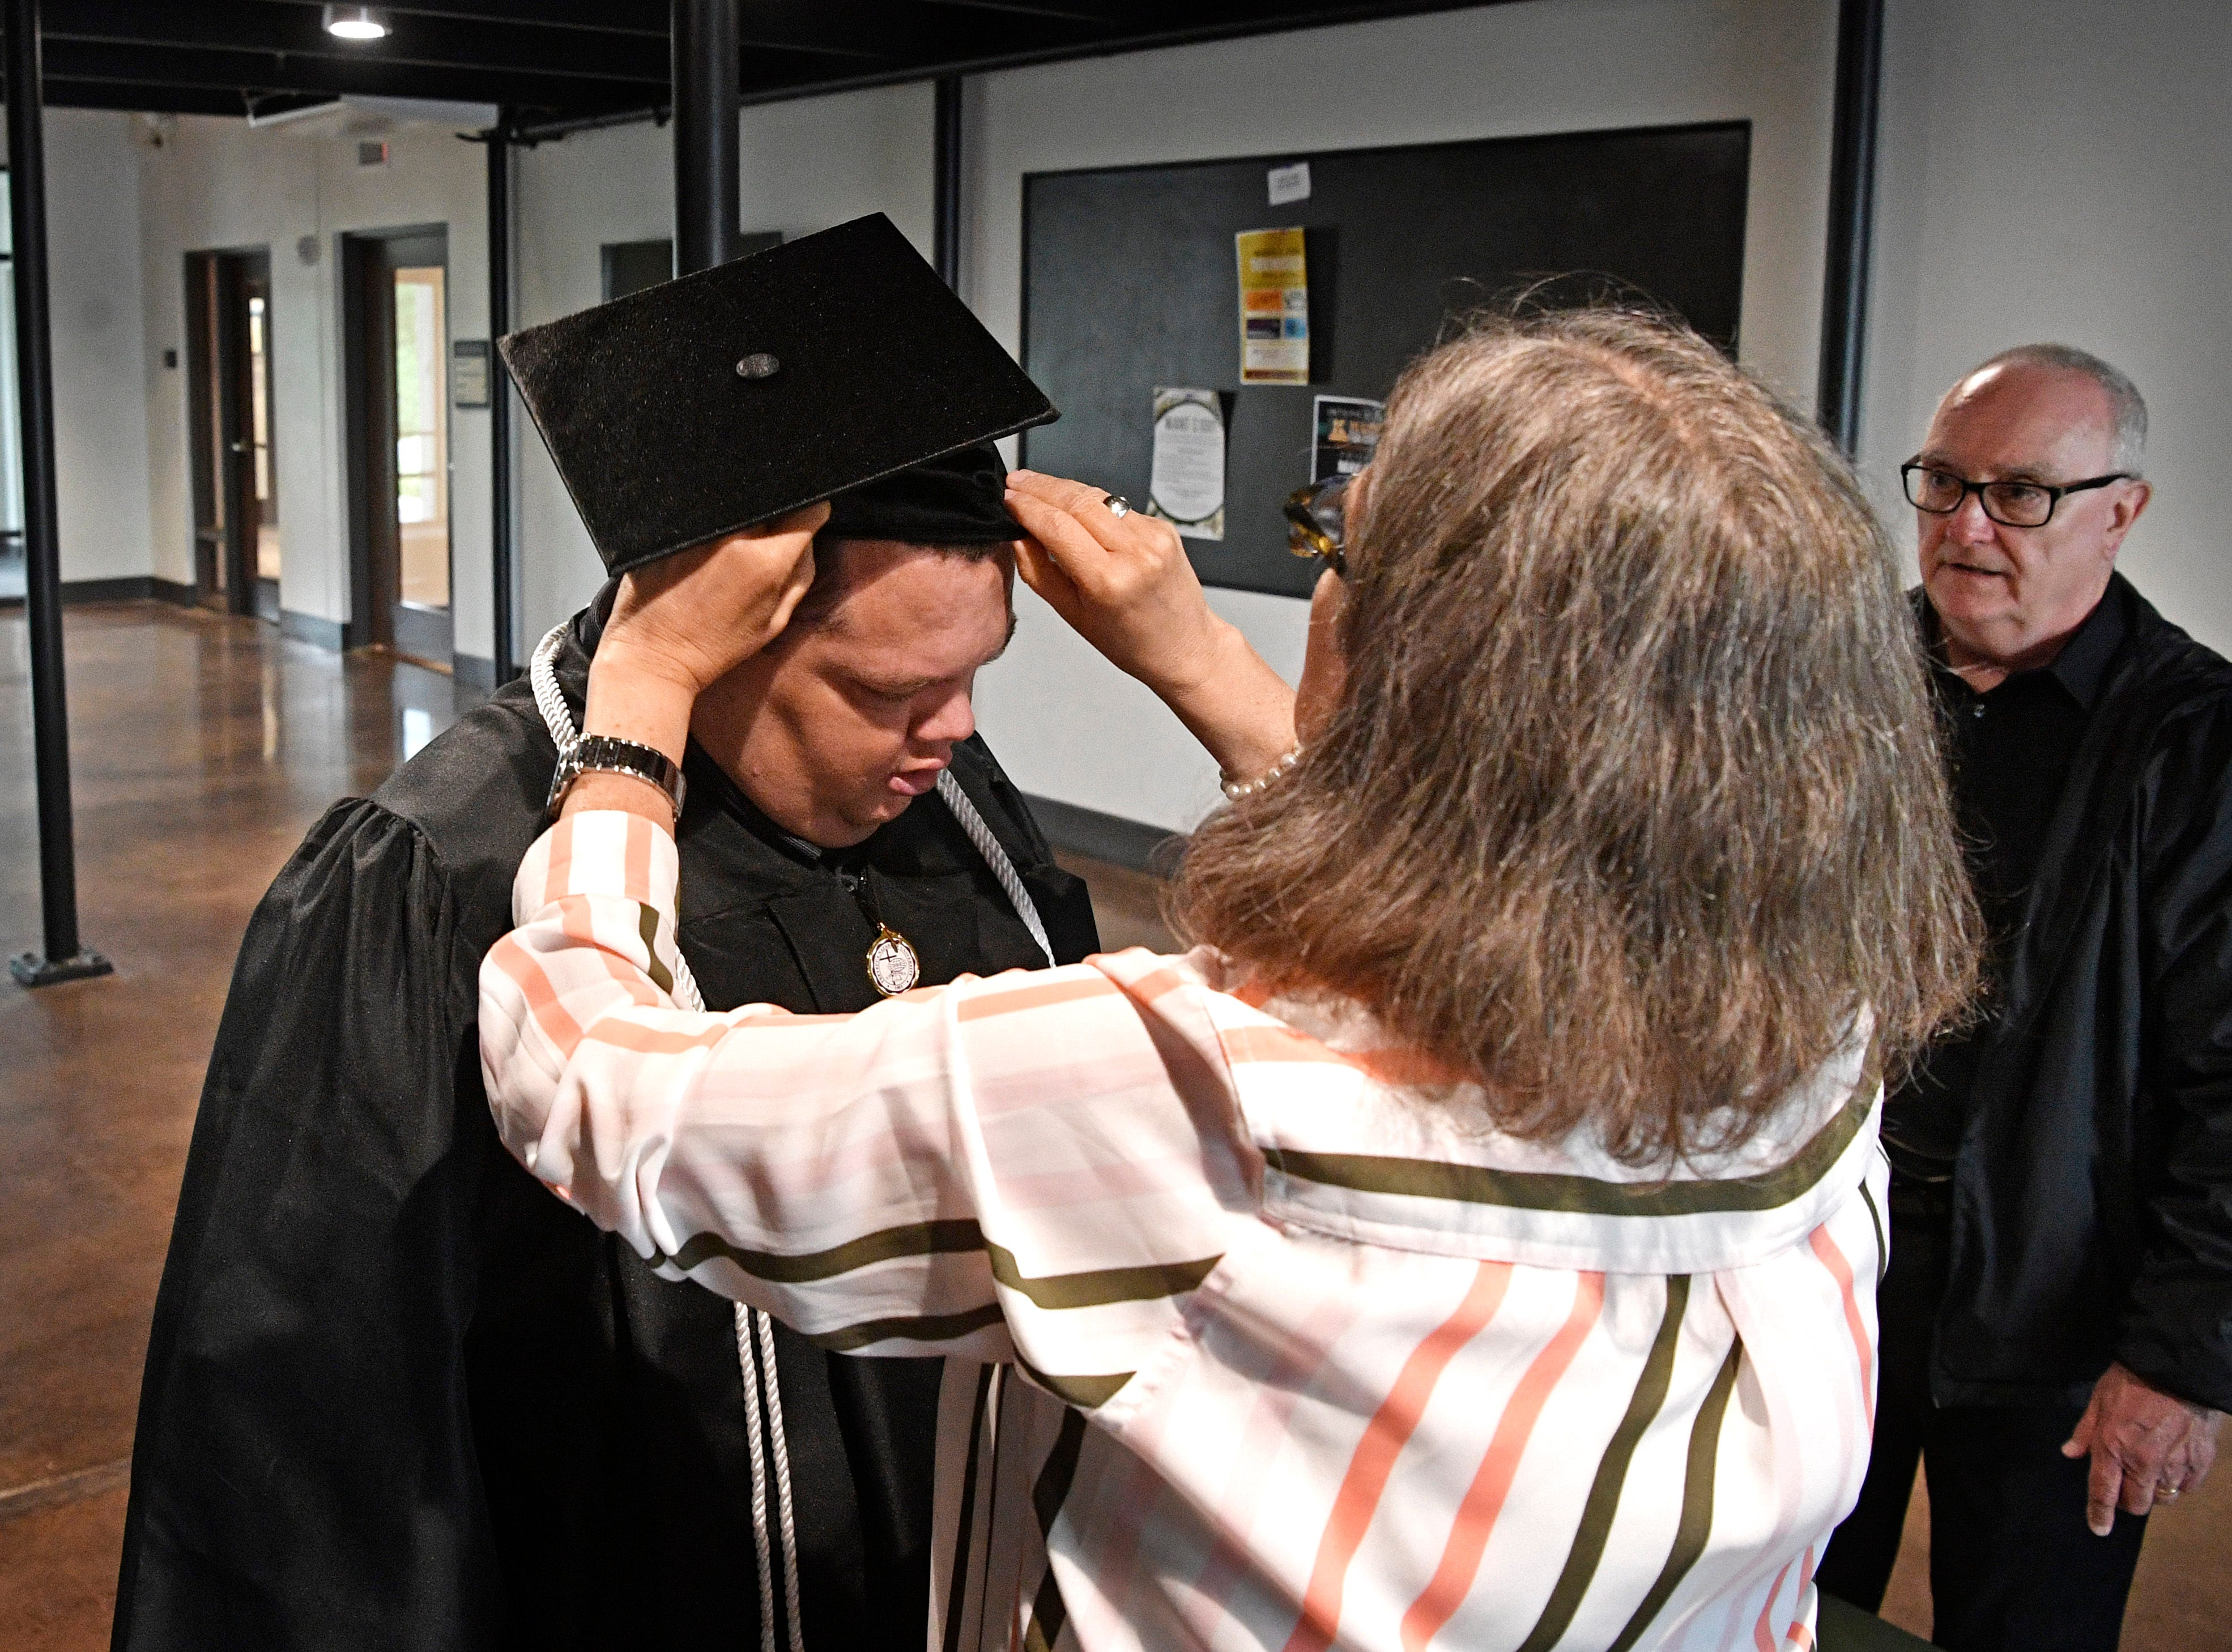 Brian Schnelle has his hat adjusted by Brenda Patterson, Professor, Dept. of Exercise and Sport Science, before he graduated from Trevecca on Saturday after 12 years as a student. He is on the autism spectrum & has pursued his degree for all those years, taking about 6 credits a semester Saturday, May 4, 2019, in Nashville, Tenn.